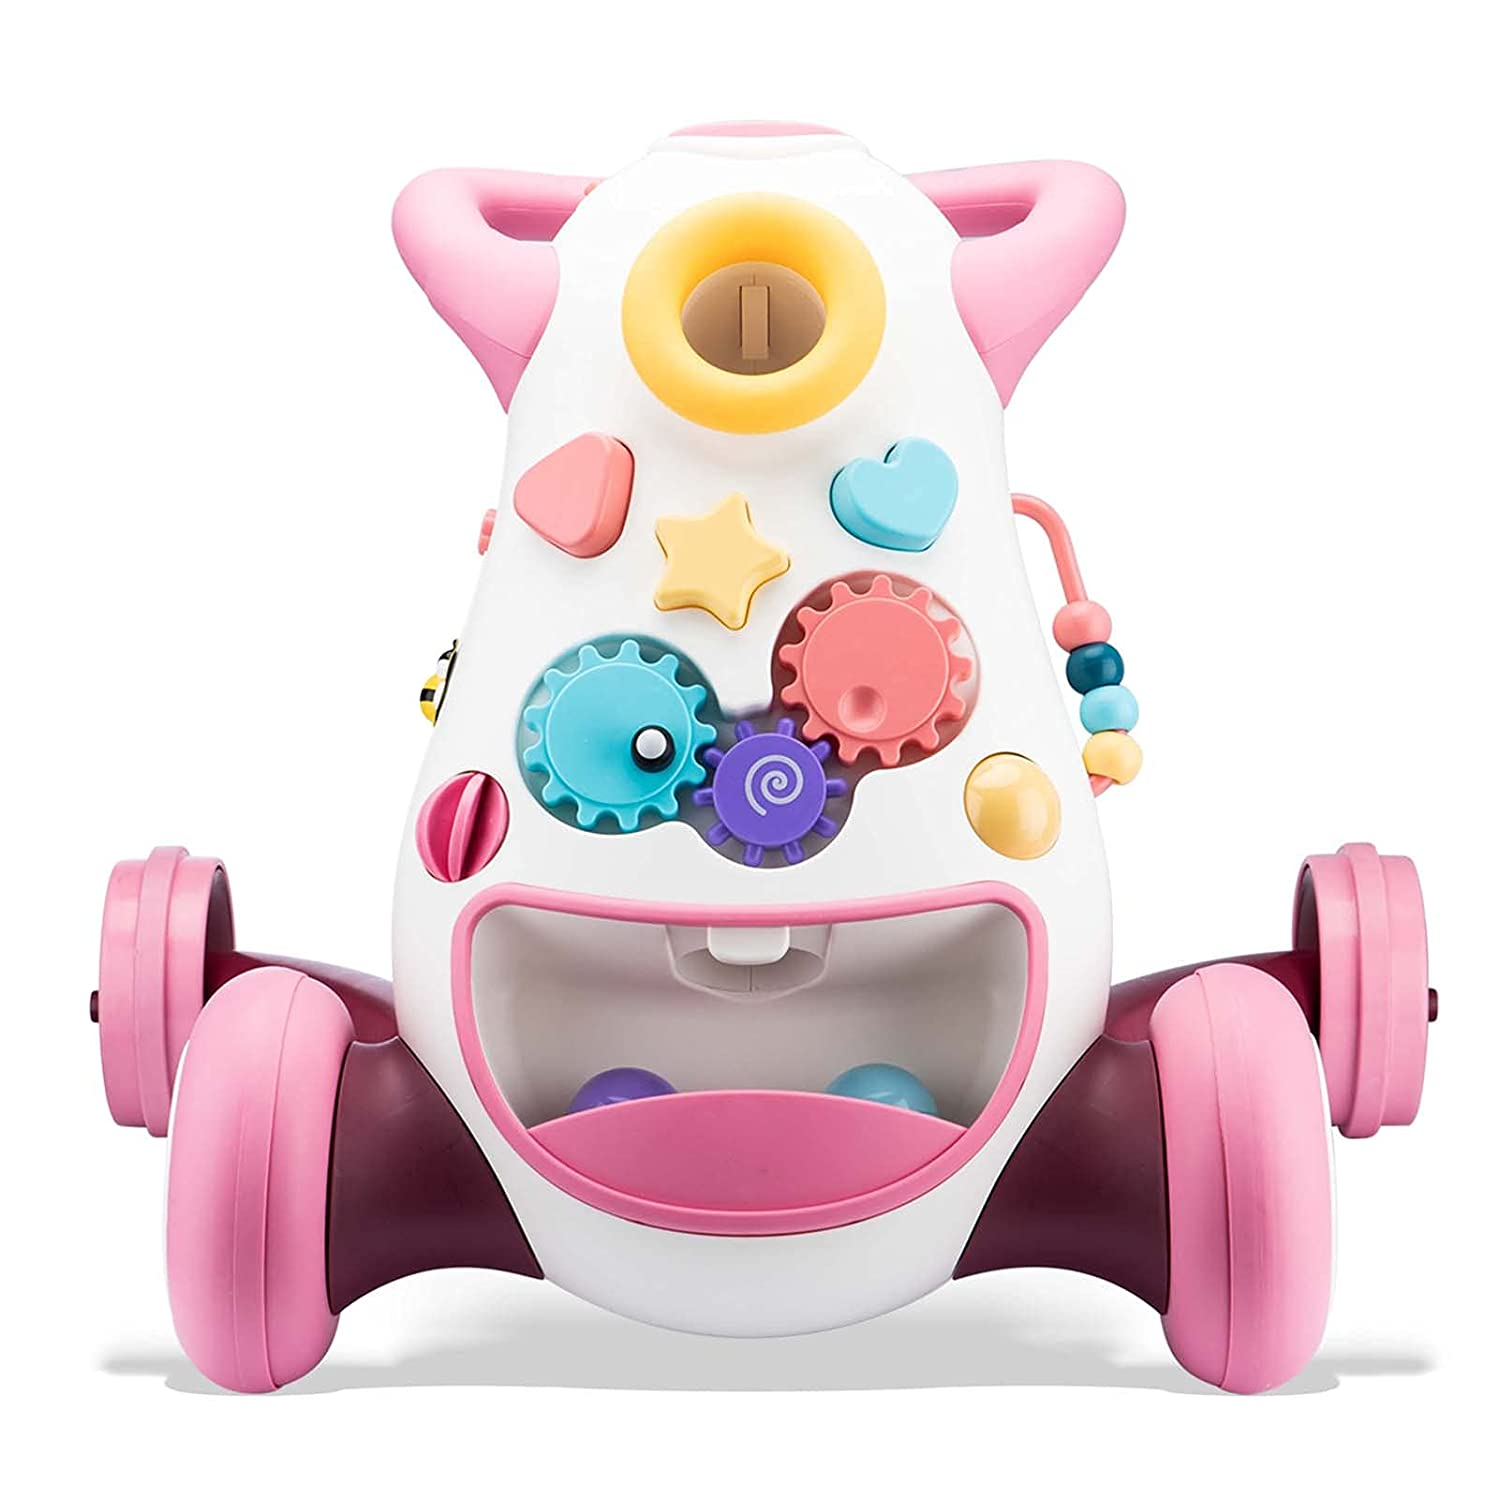 Tinone Baby Toddler Infant Walker,Sit to Stand Toys,Musical Fun Activity Center with Light,Cute Push Cars,First Birthday Gift for 10+ Month,1 Year Old Boy Girl (Pink)